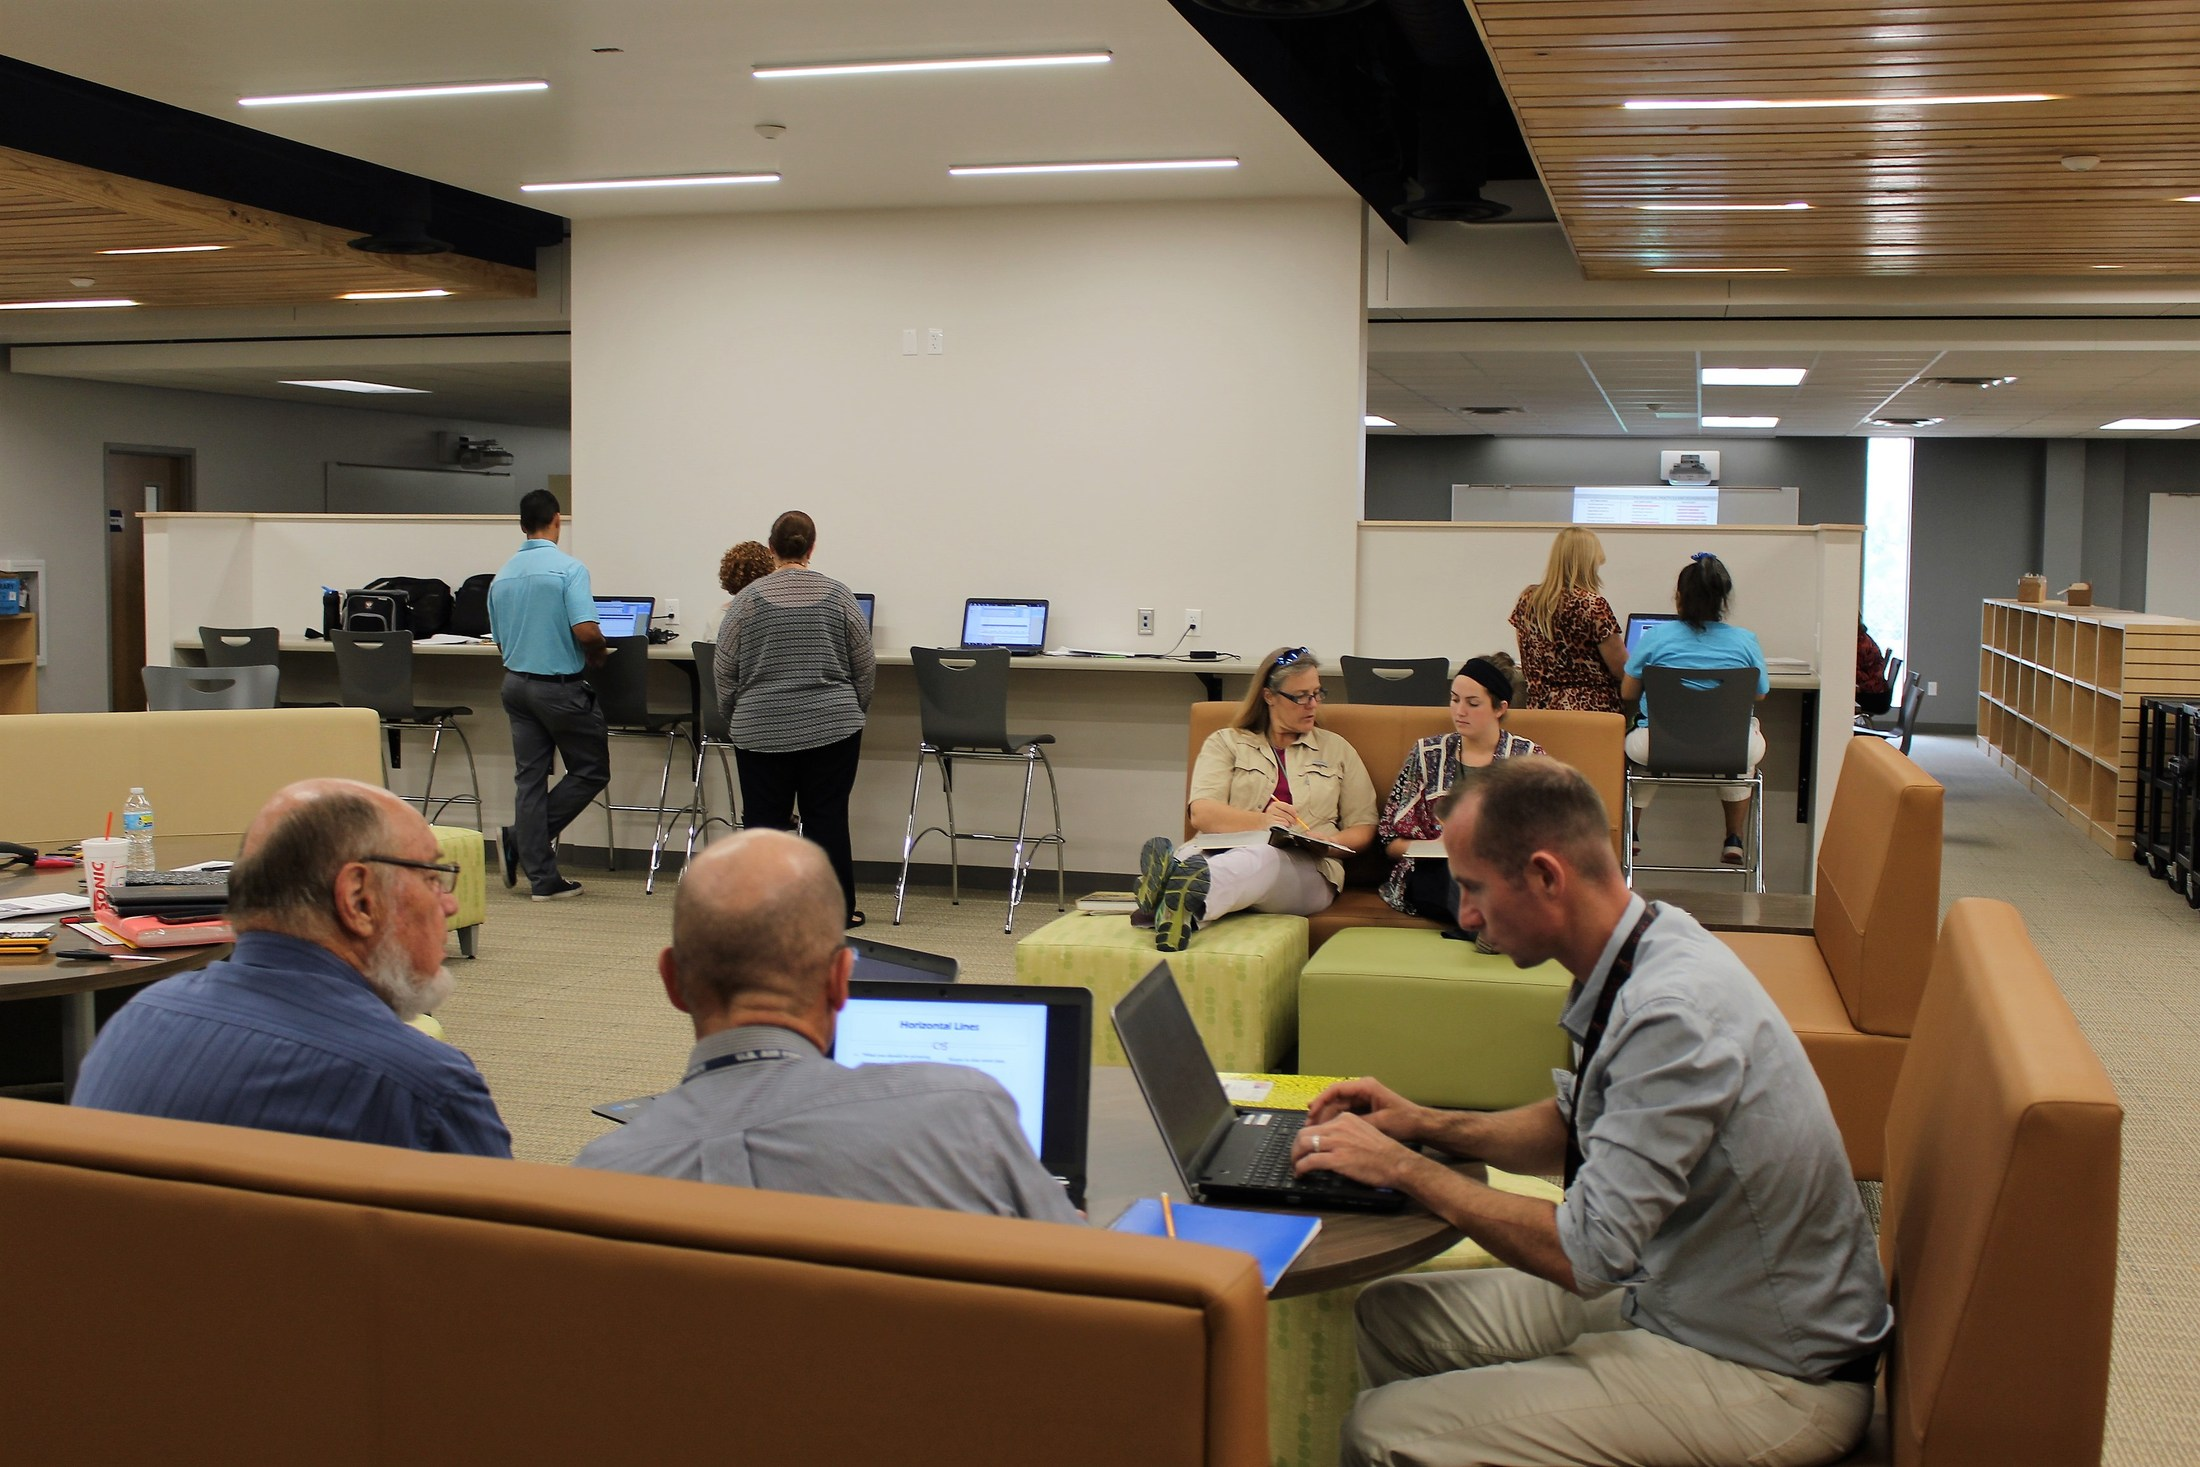 Adults working in groups in the library.